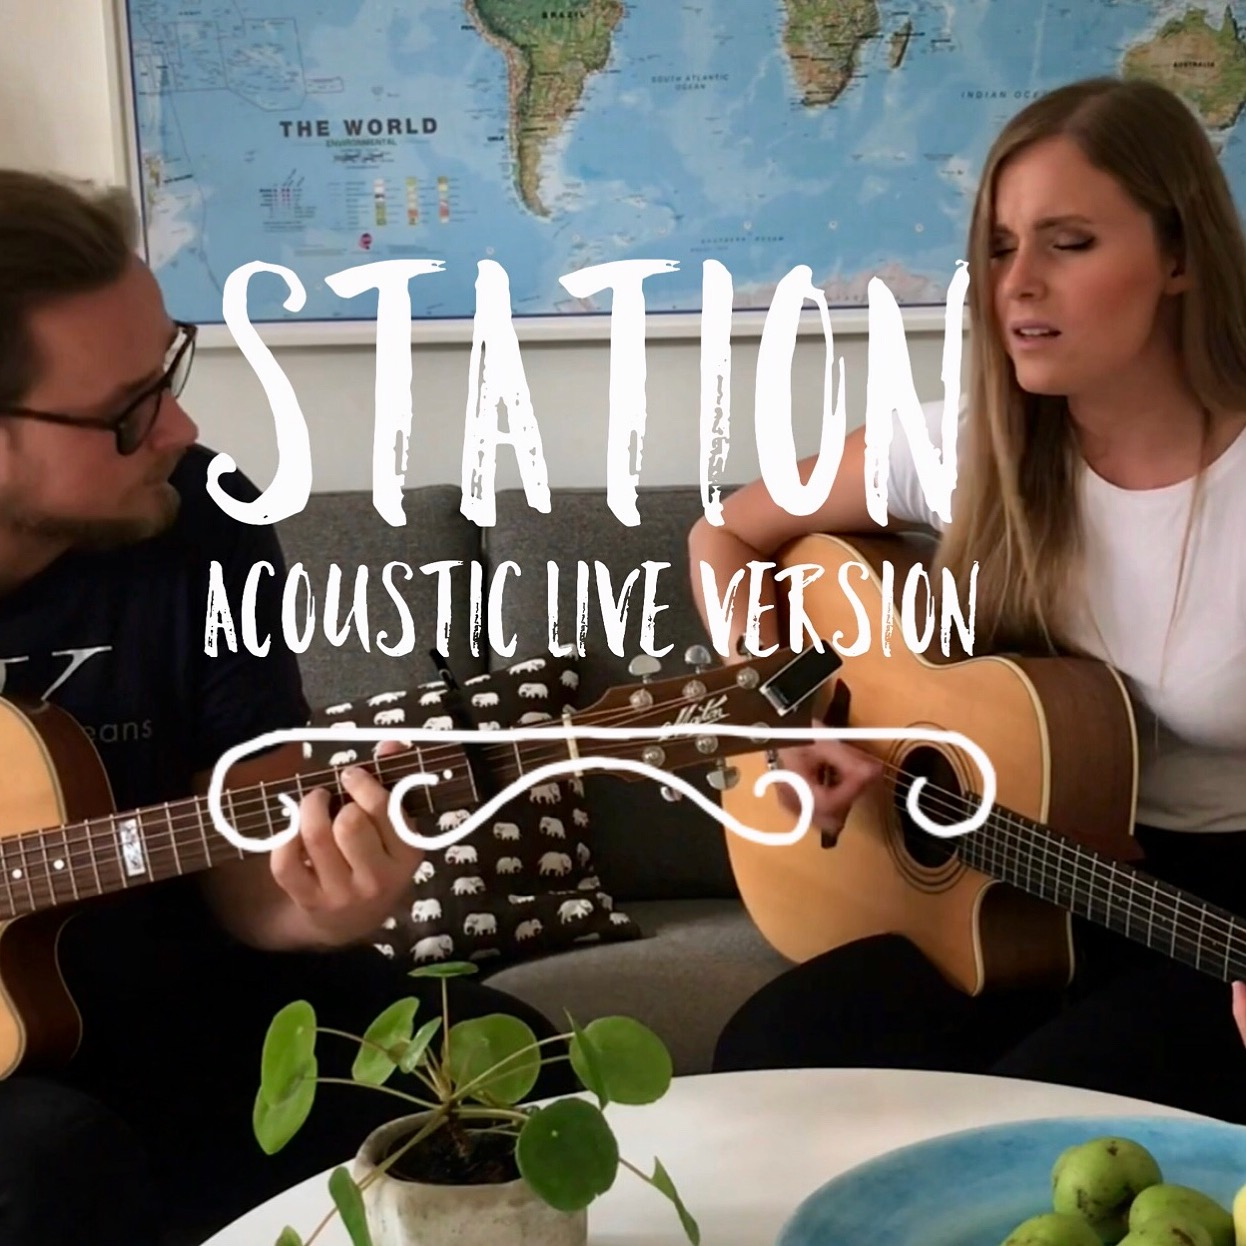 Station Acoustic Live Version